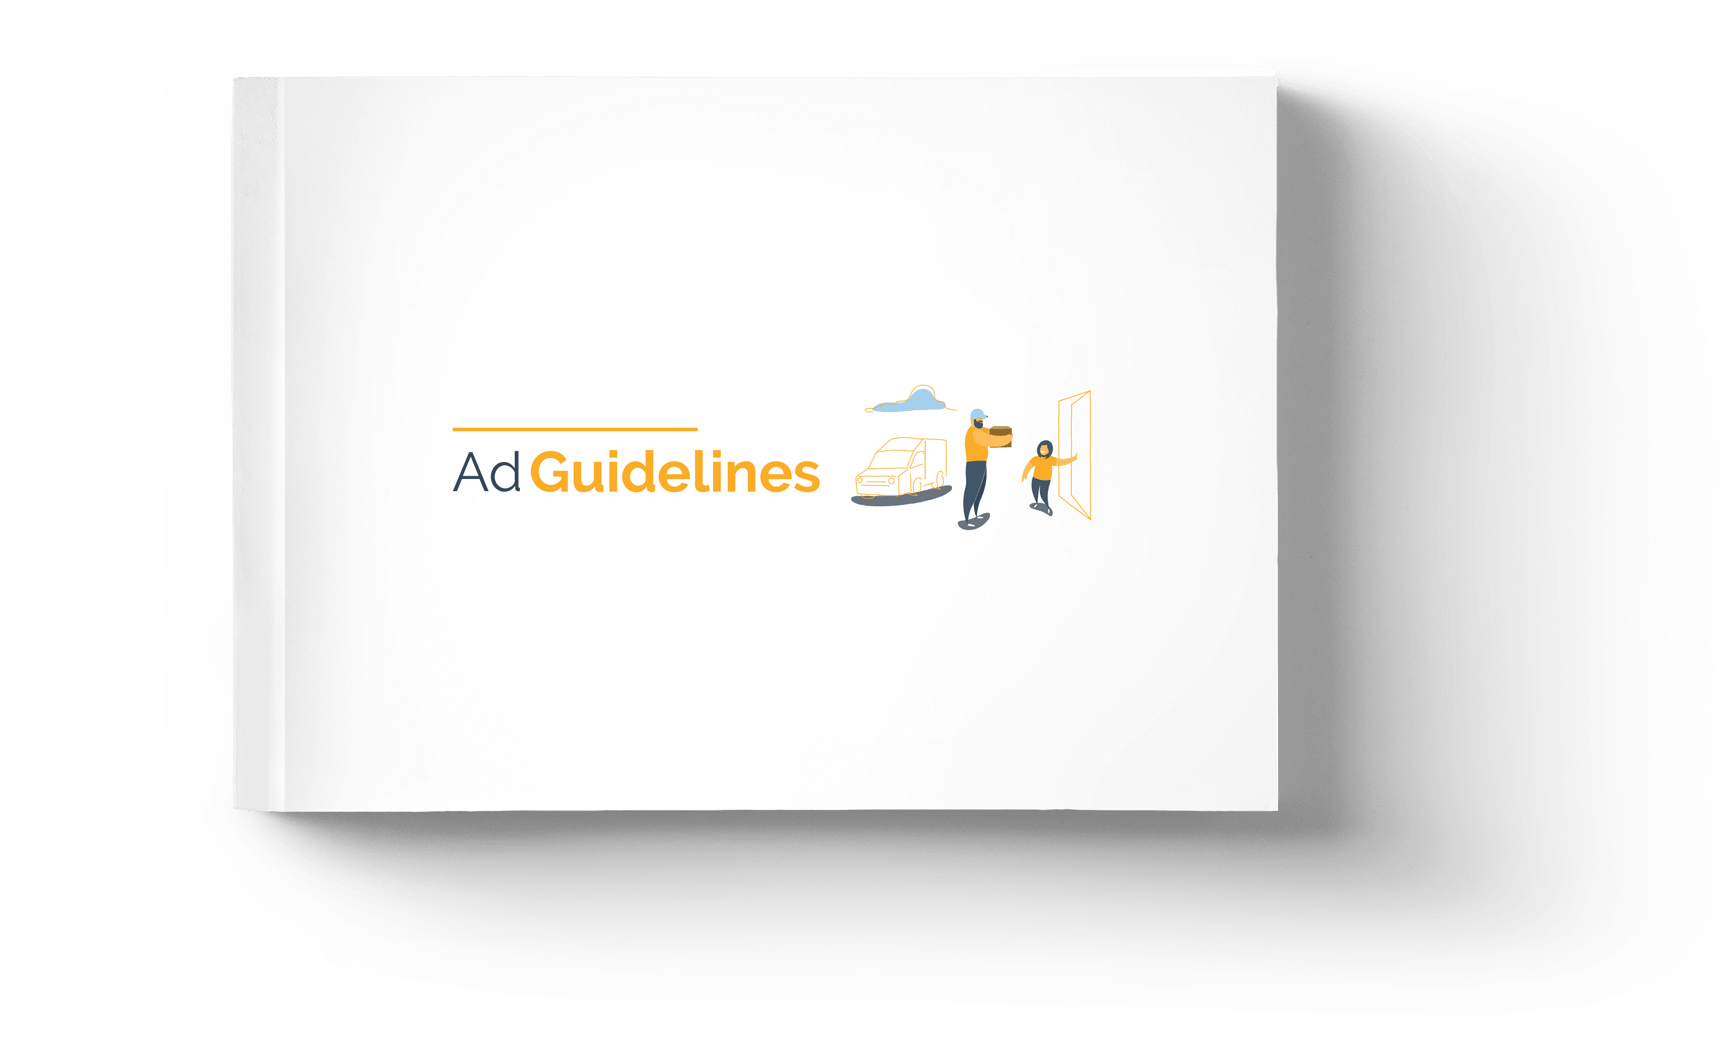 brand guidelines image2